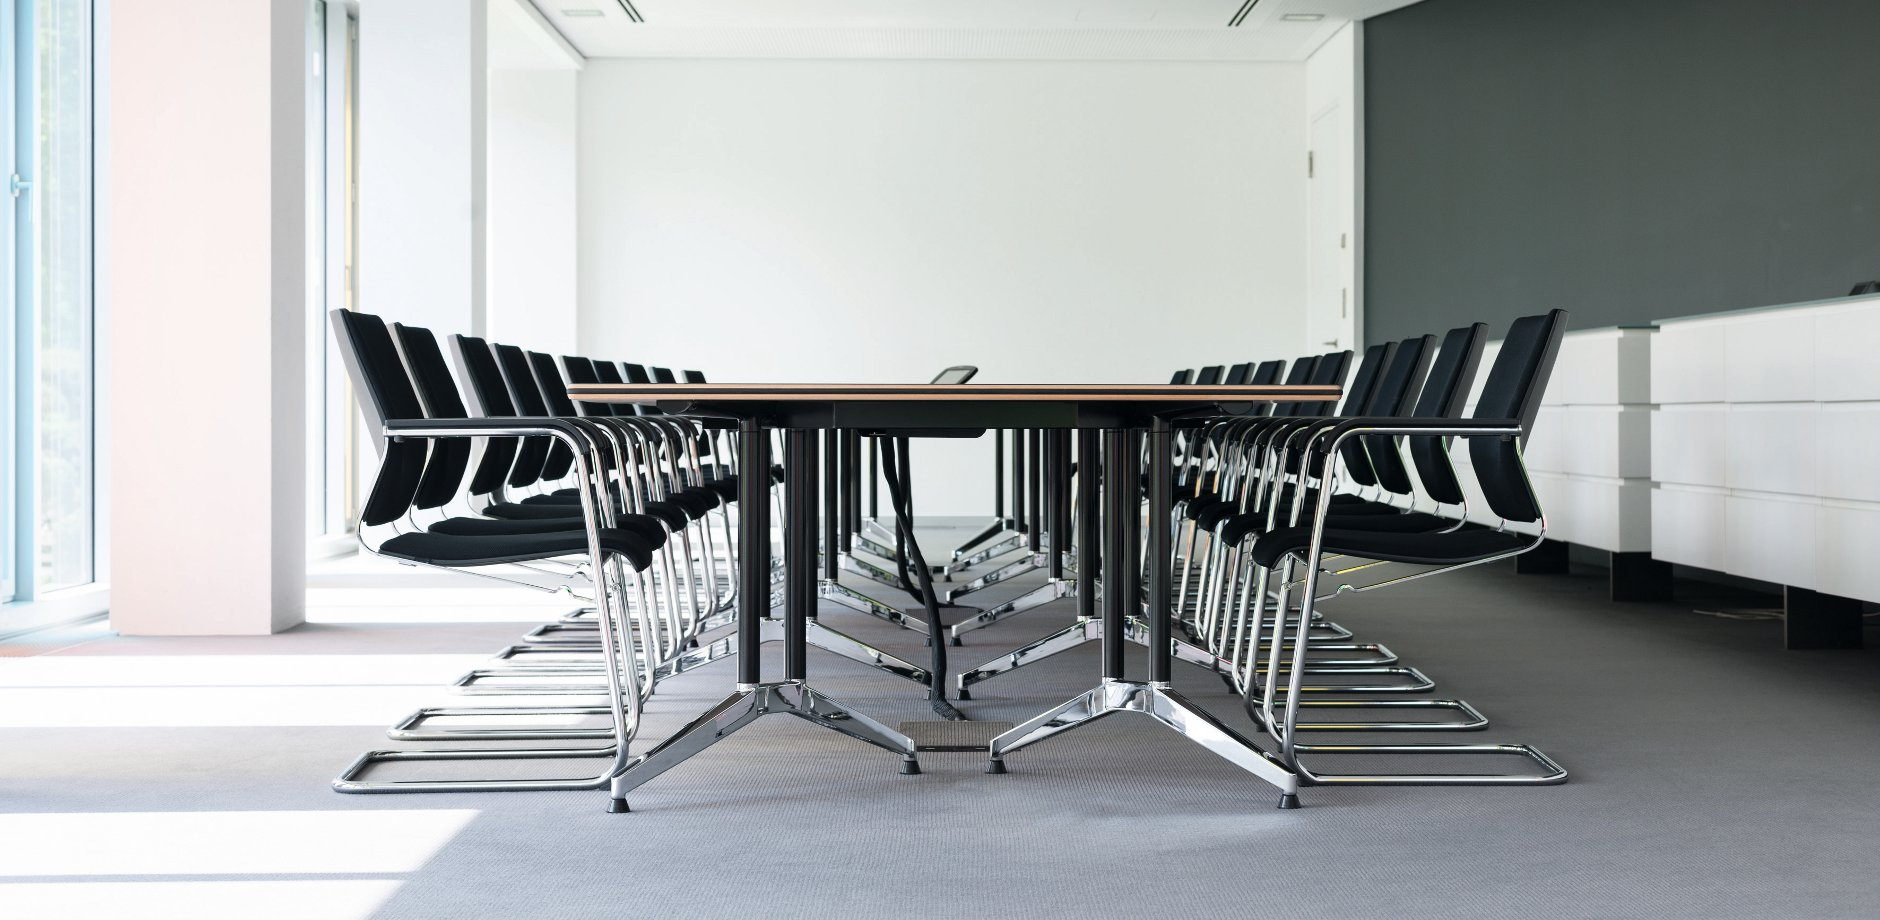 LVM Versicherung, Sito cantilever chair and Logon conference table by Wilkhahn